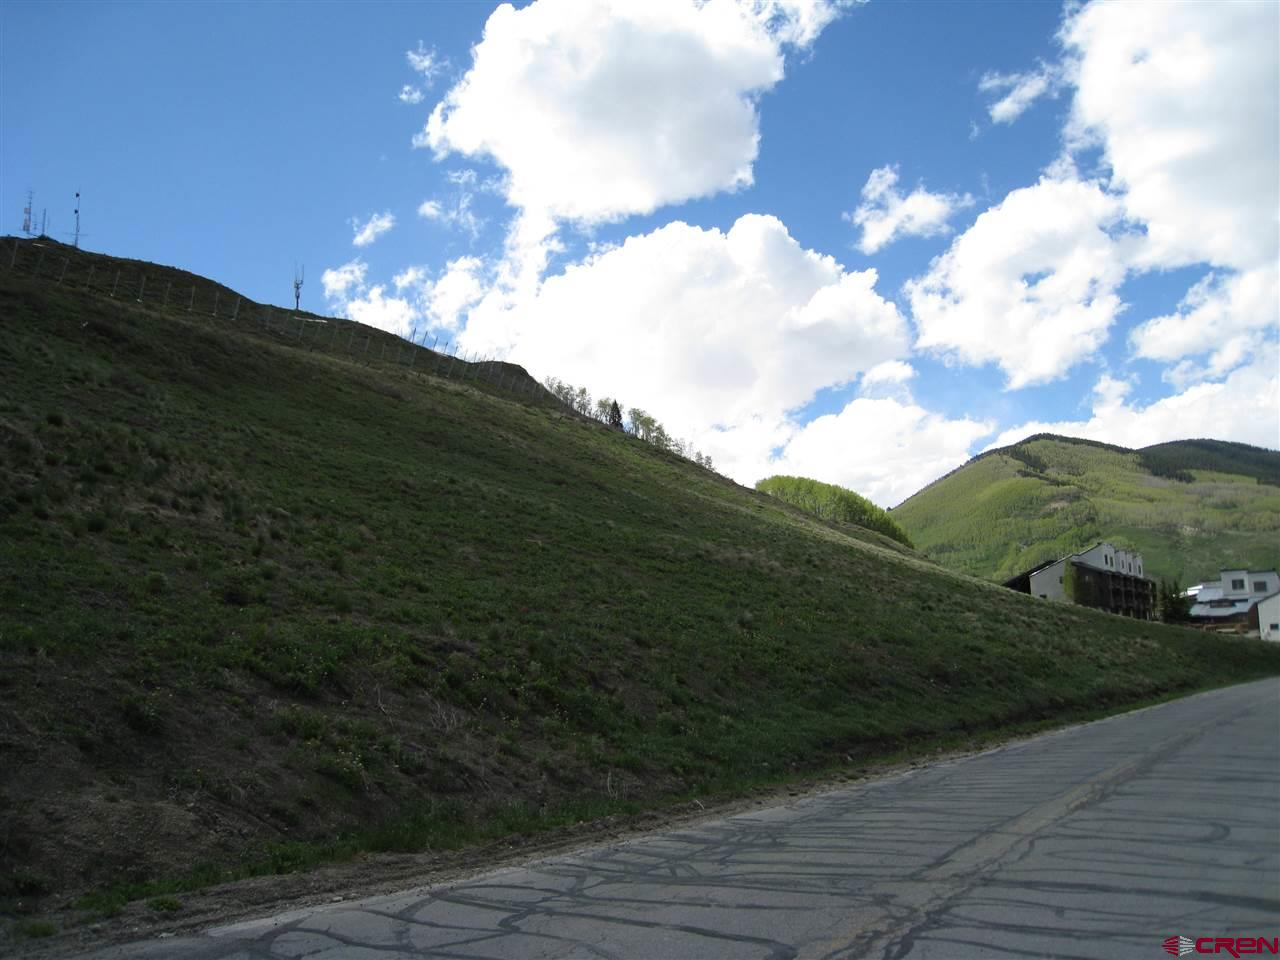 MLS# 757036 - 17 Marcellina Lane, Mt. Crested Butte, CO 81225